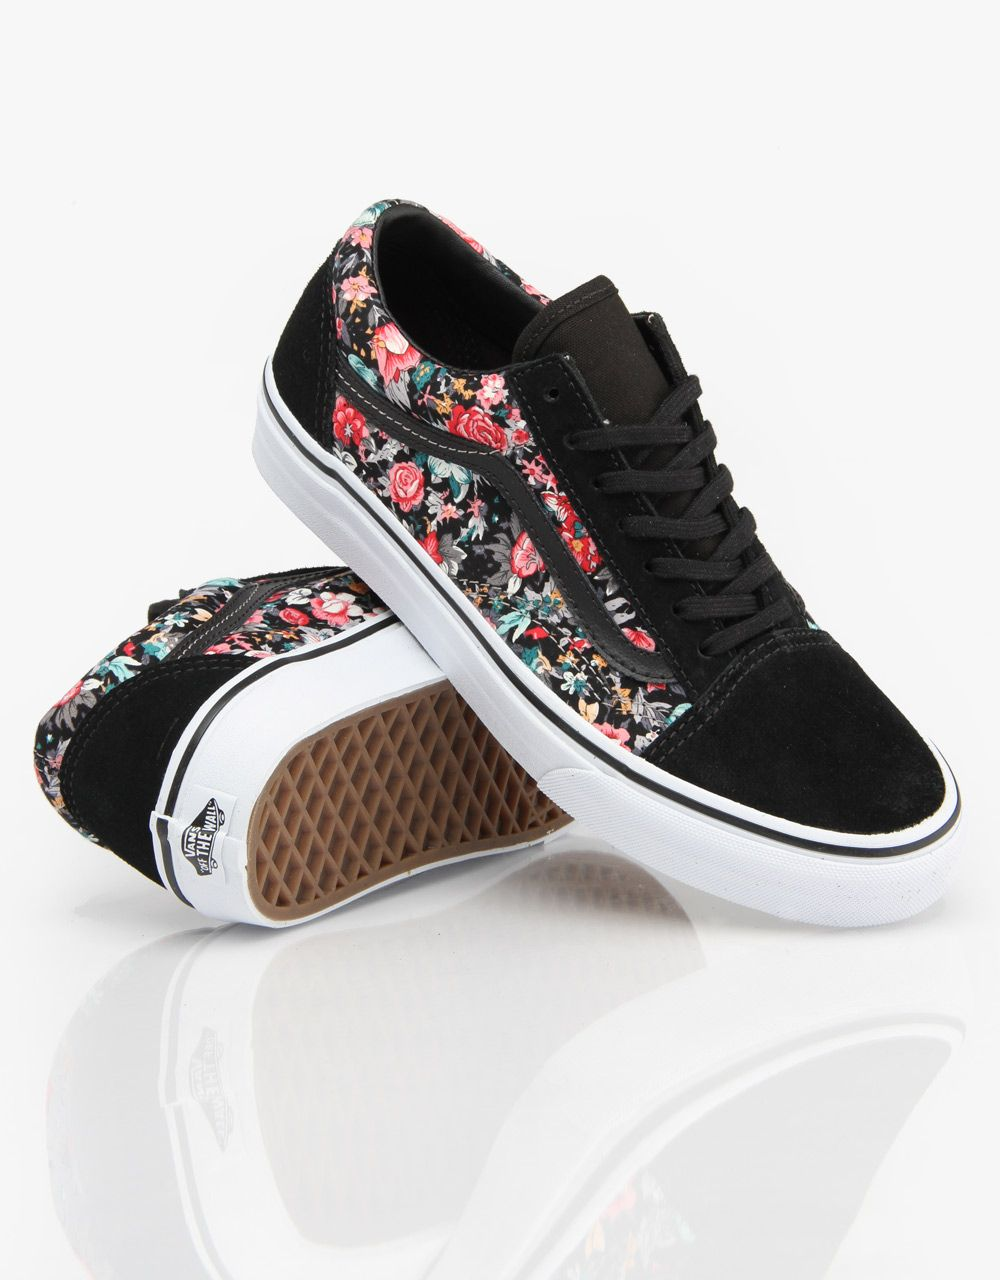 45cf24d40cef42 Vans Old Skool Girls Skate Shoes - Multi Floral Black True White -  RouteOne.co.uk